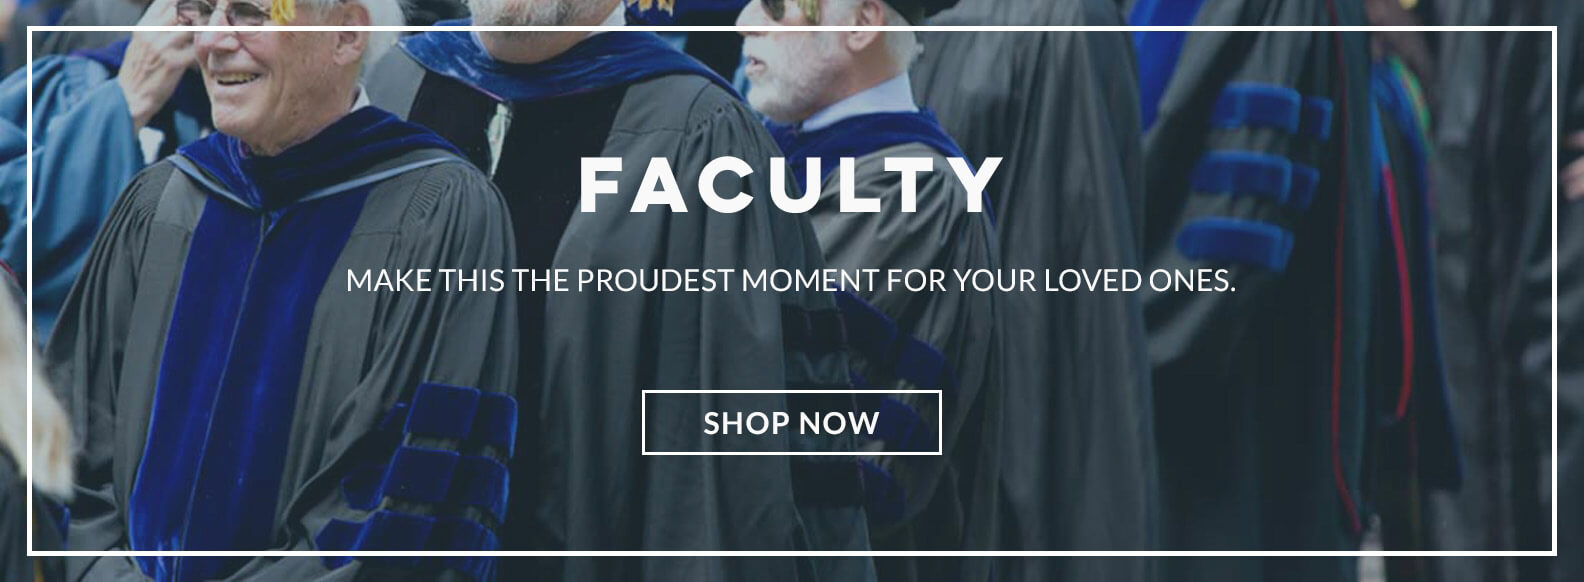 faculty page title